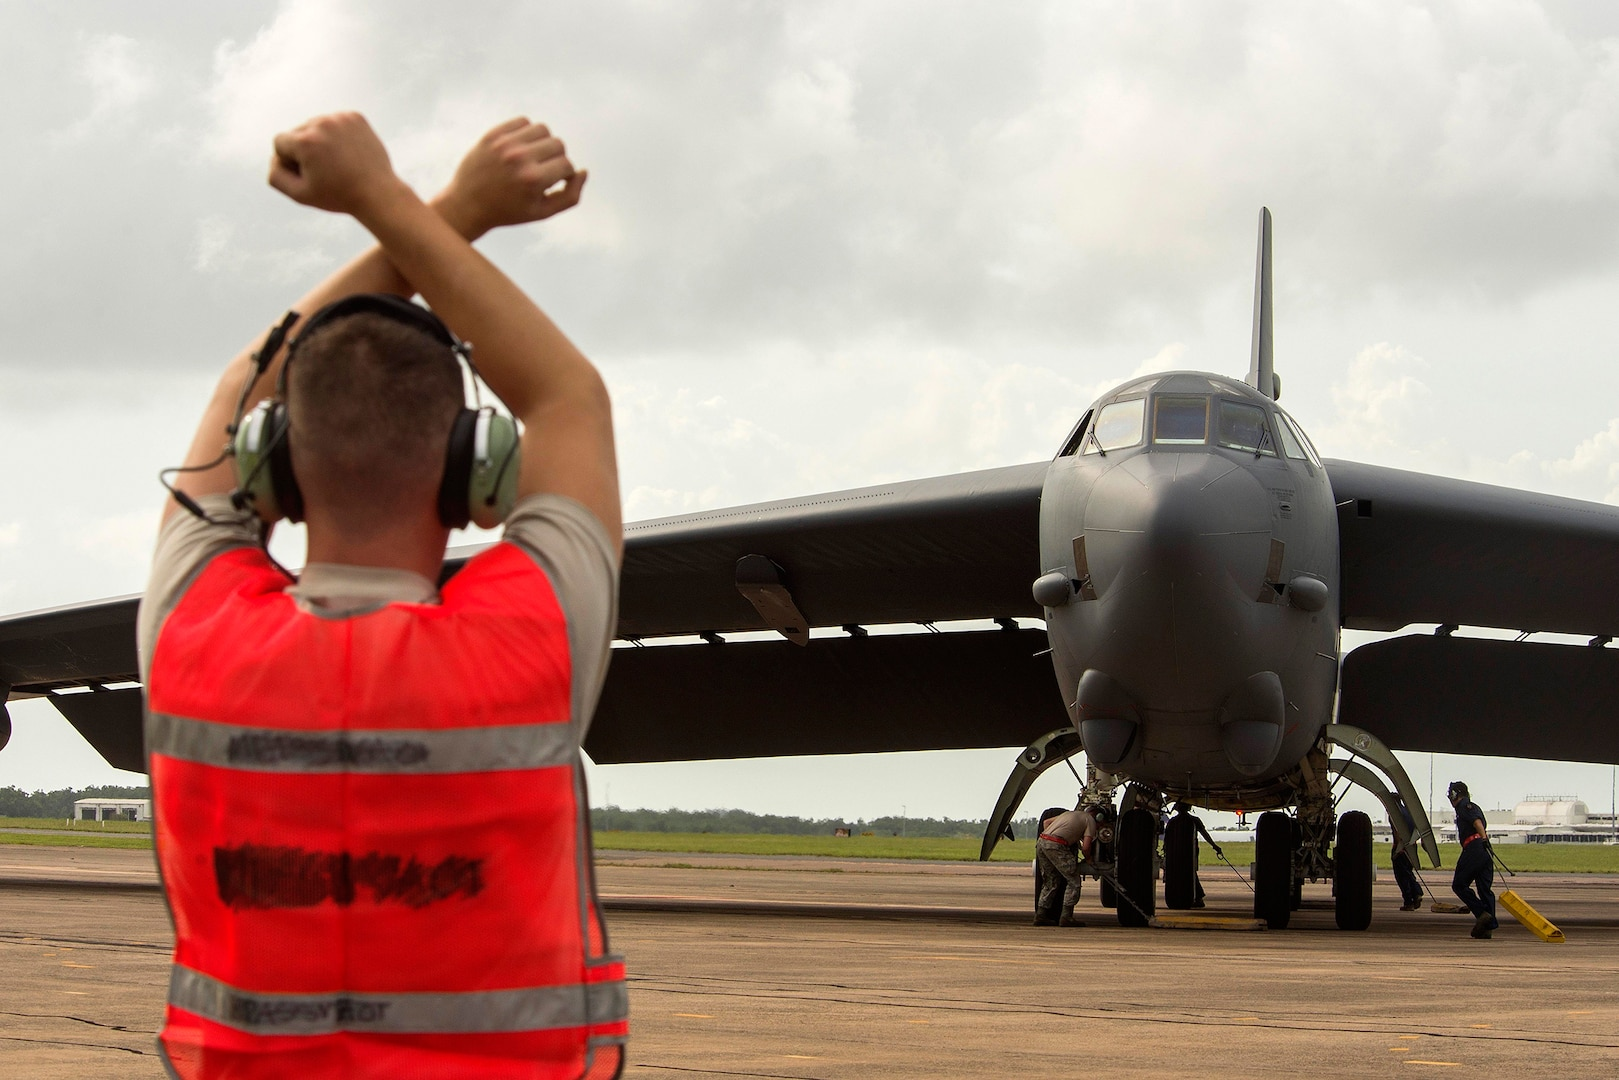 23rd Expeditionary Bomber Squadron brings Bomber Support to Diamond Shield 2019